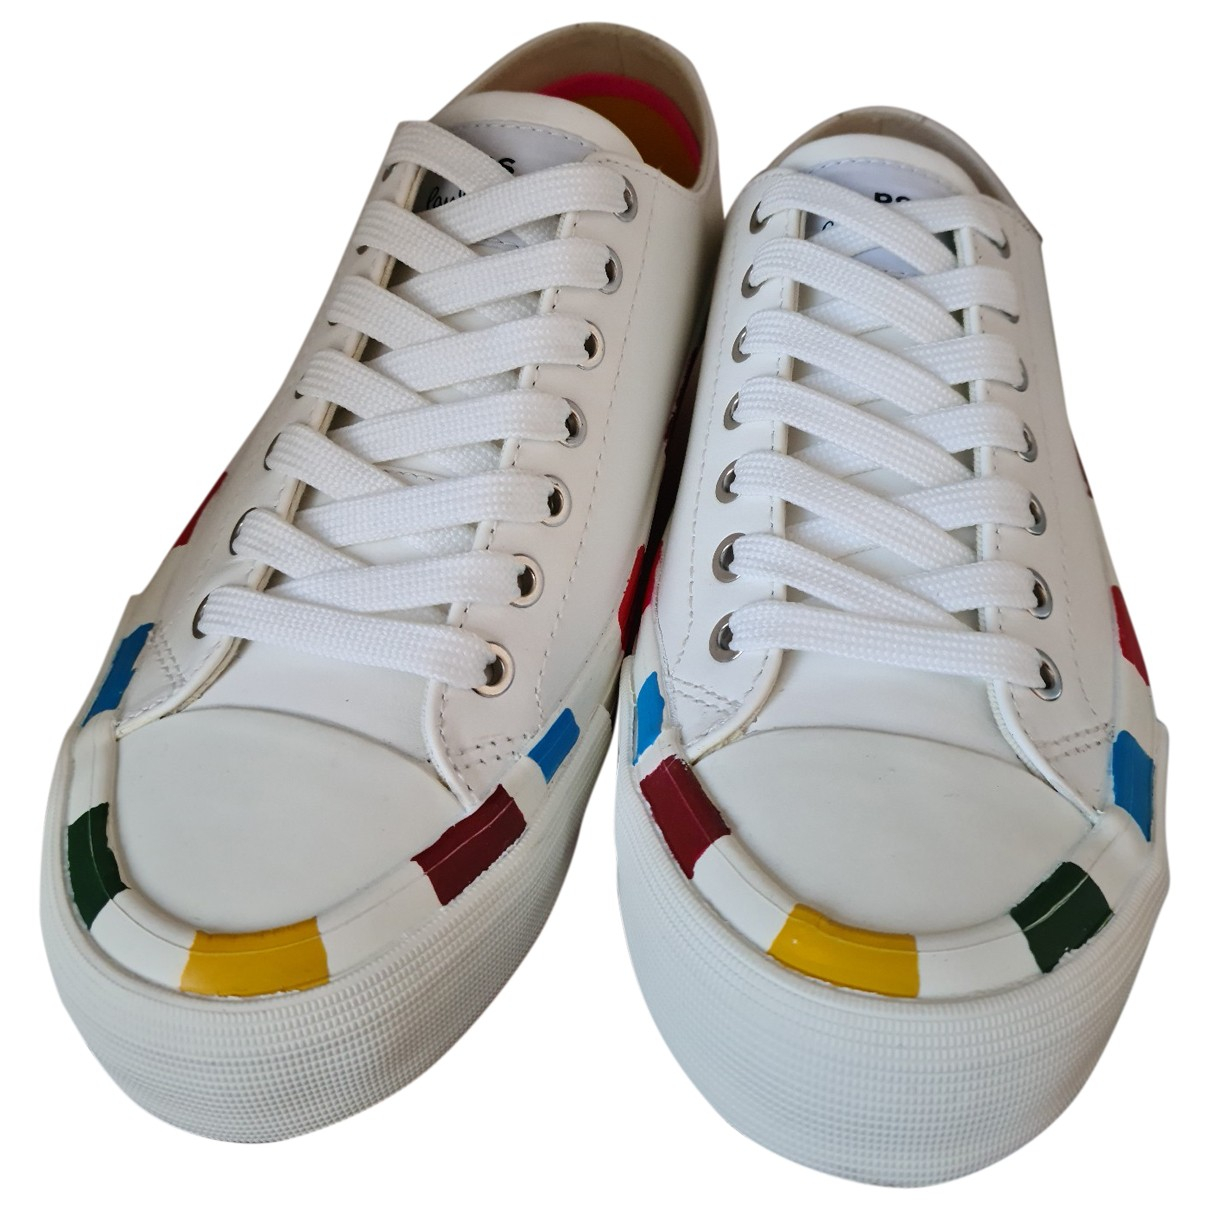 Paul Smith N White Leather Trainers for Women 37 EU